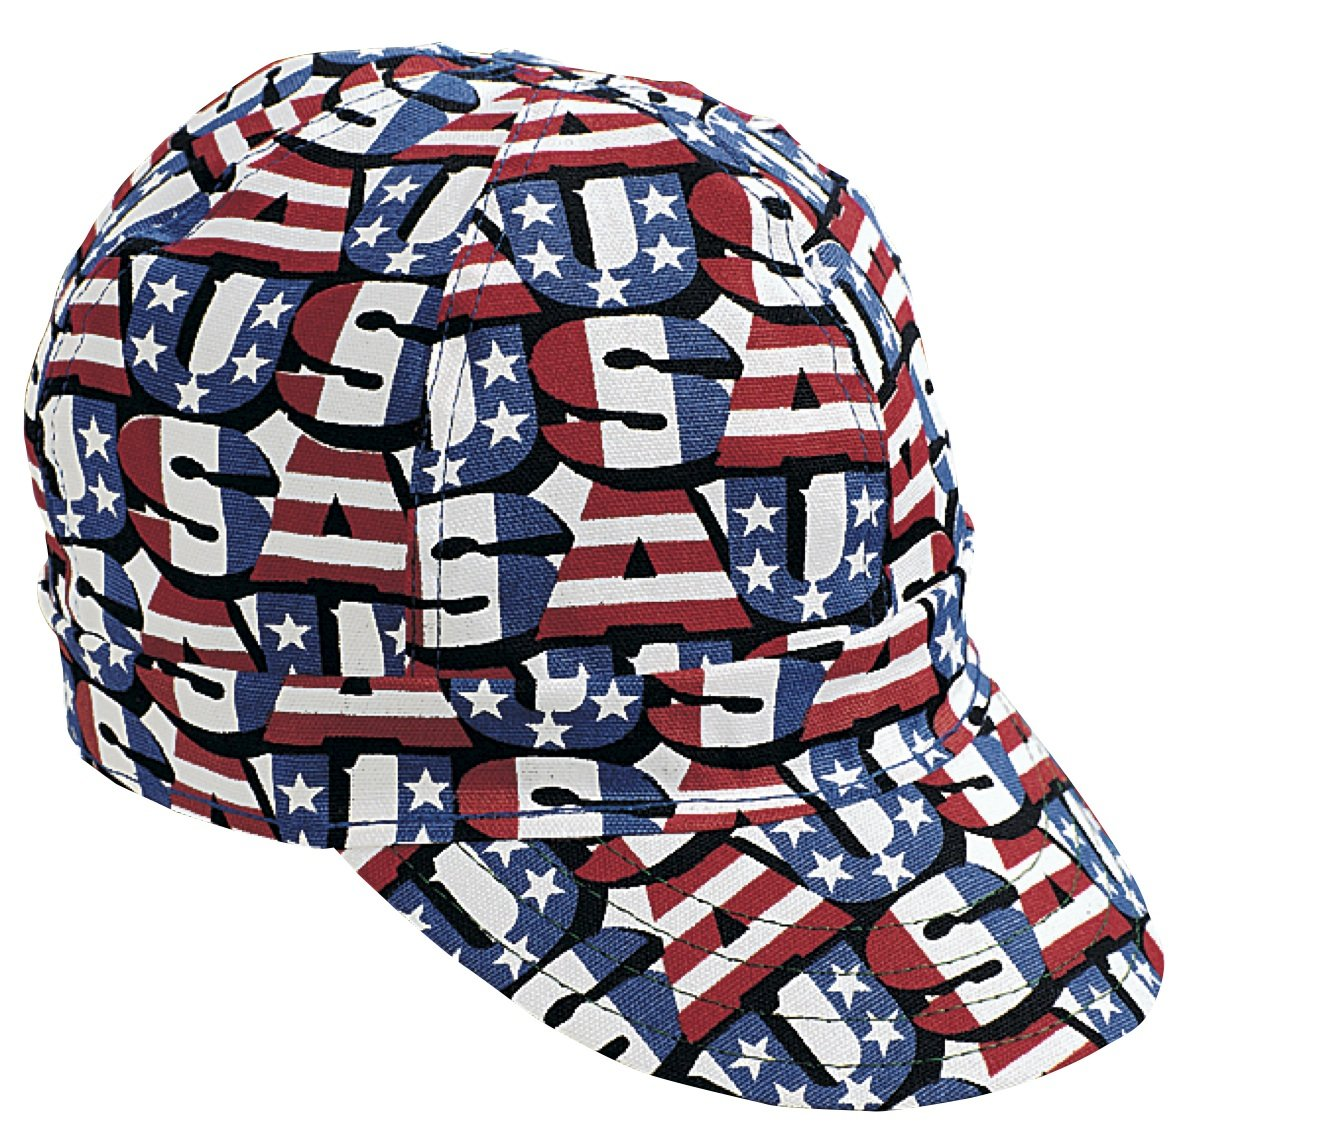 Mutual Industries 00210-00000-7125 Kromer Red White Blue USA Style Welder Cap, Cotton, Length 5'', Width 6'' by Mutual Industries